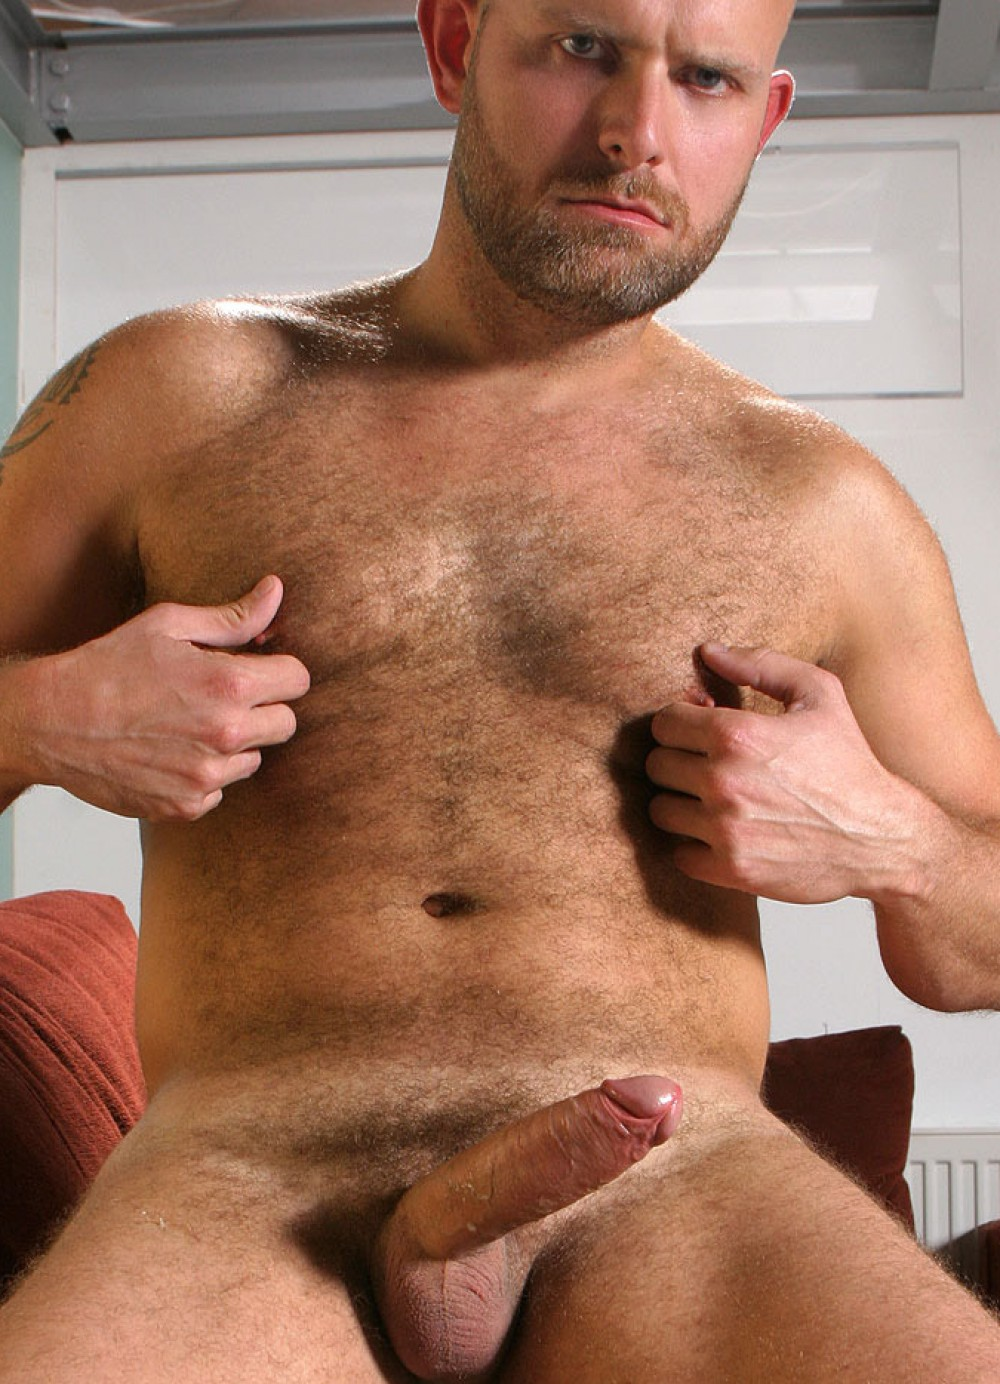 sunny-male-pornstar-uncut-dick-sexy-girls-strippers